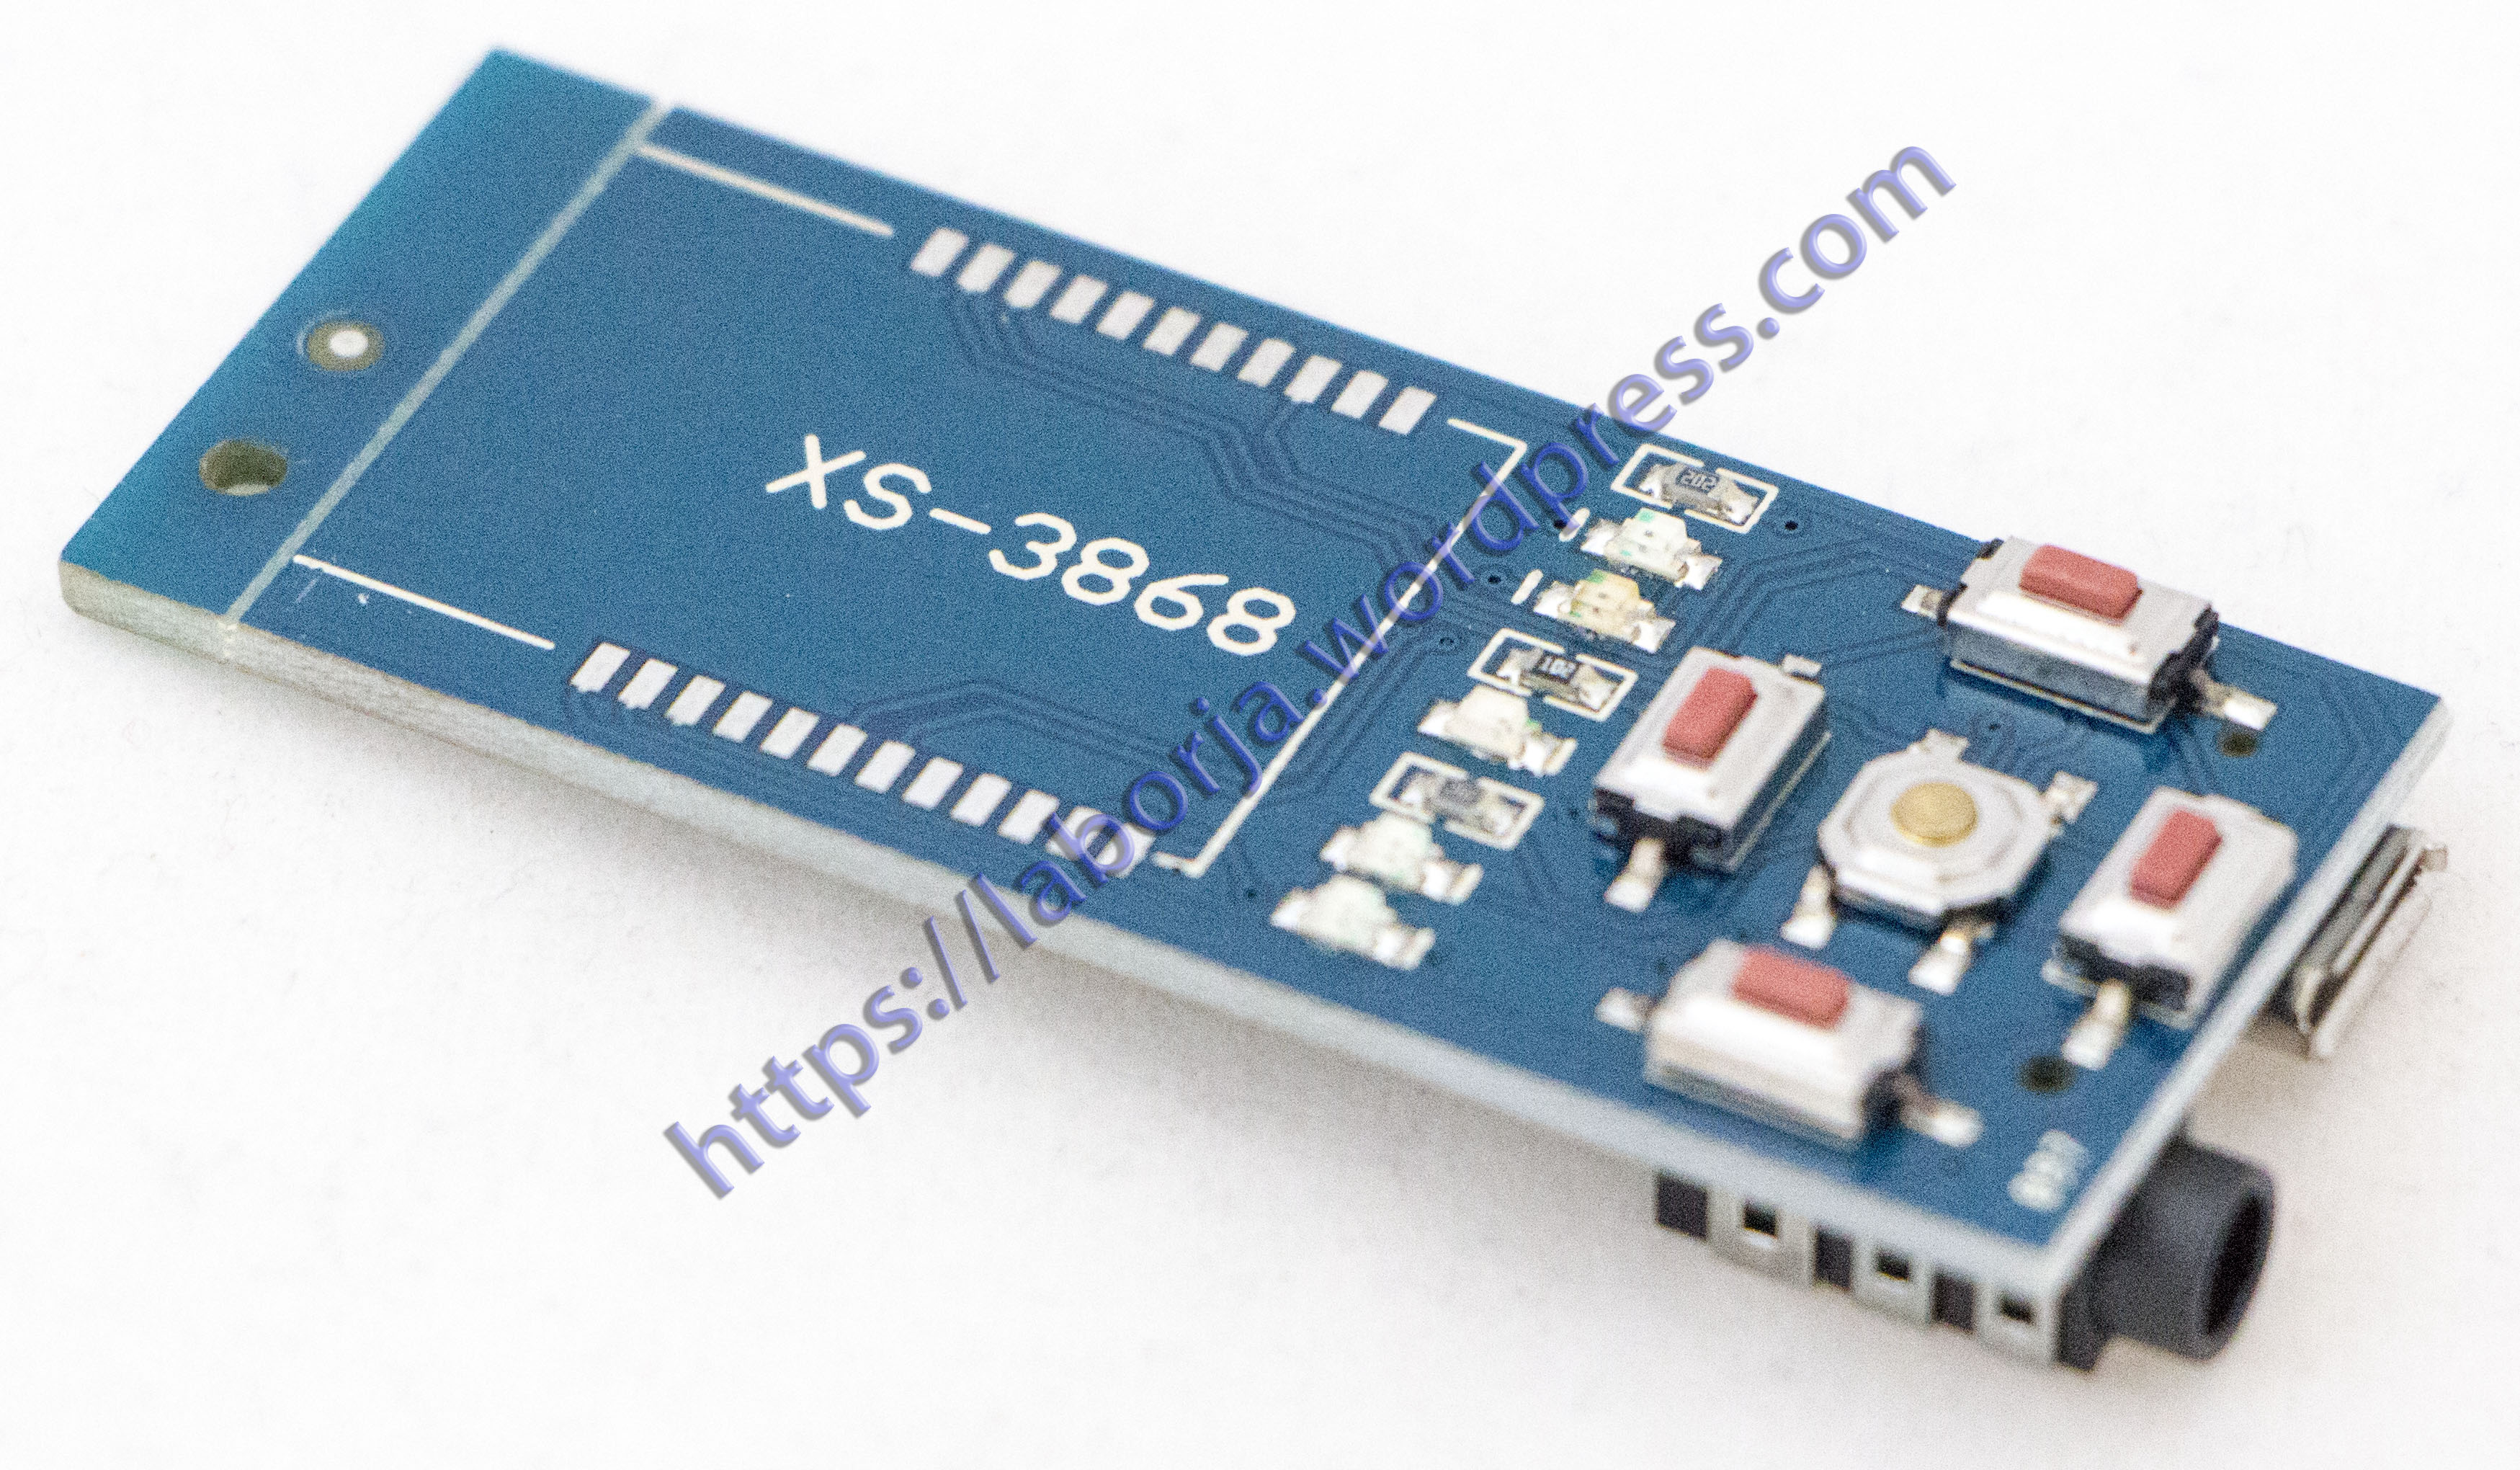 XS3868 Backplane Adapter | Borja Home Page